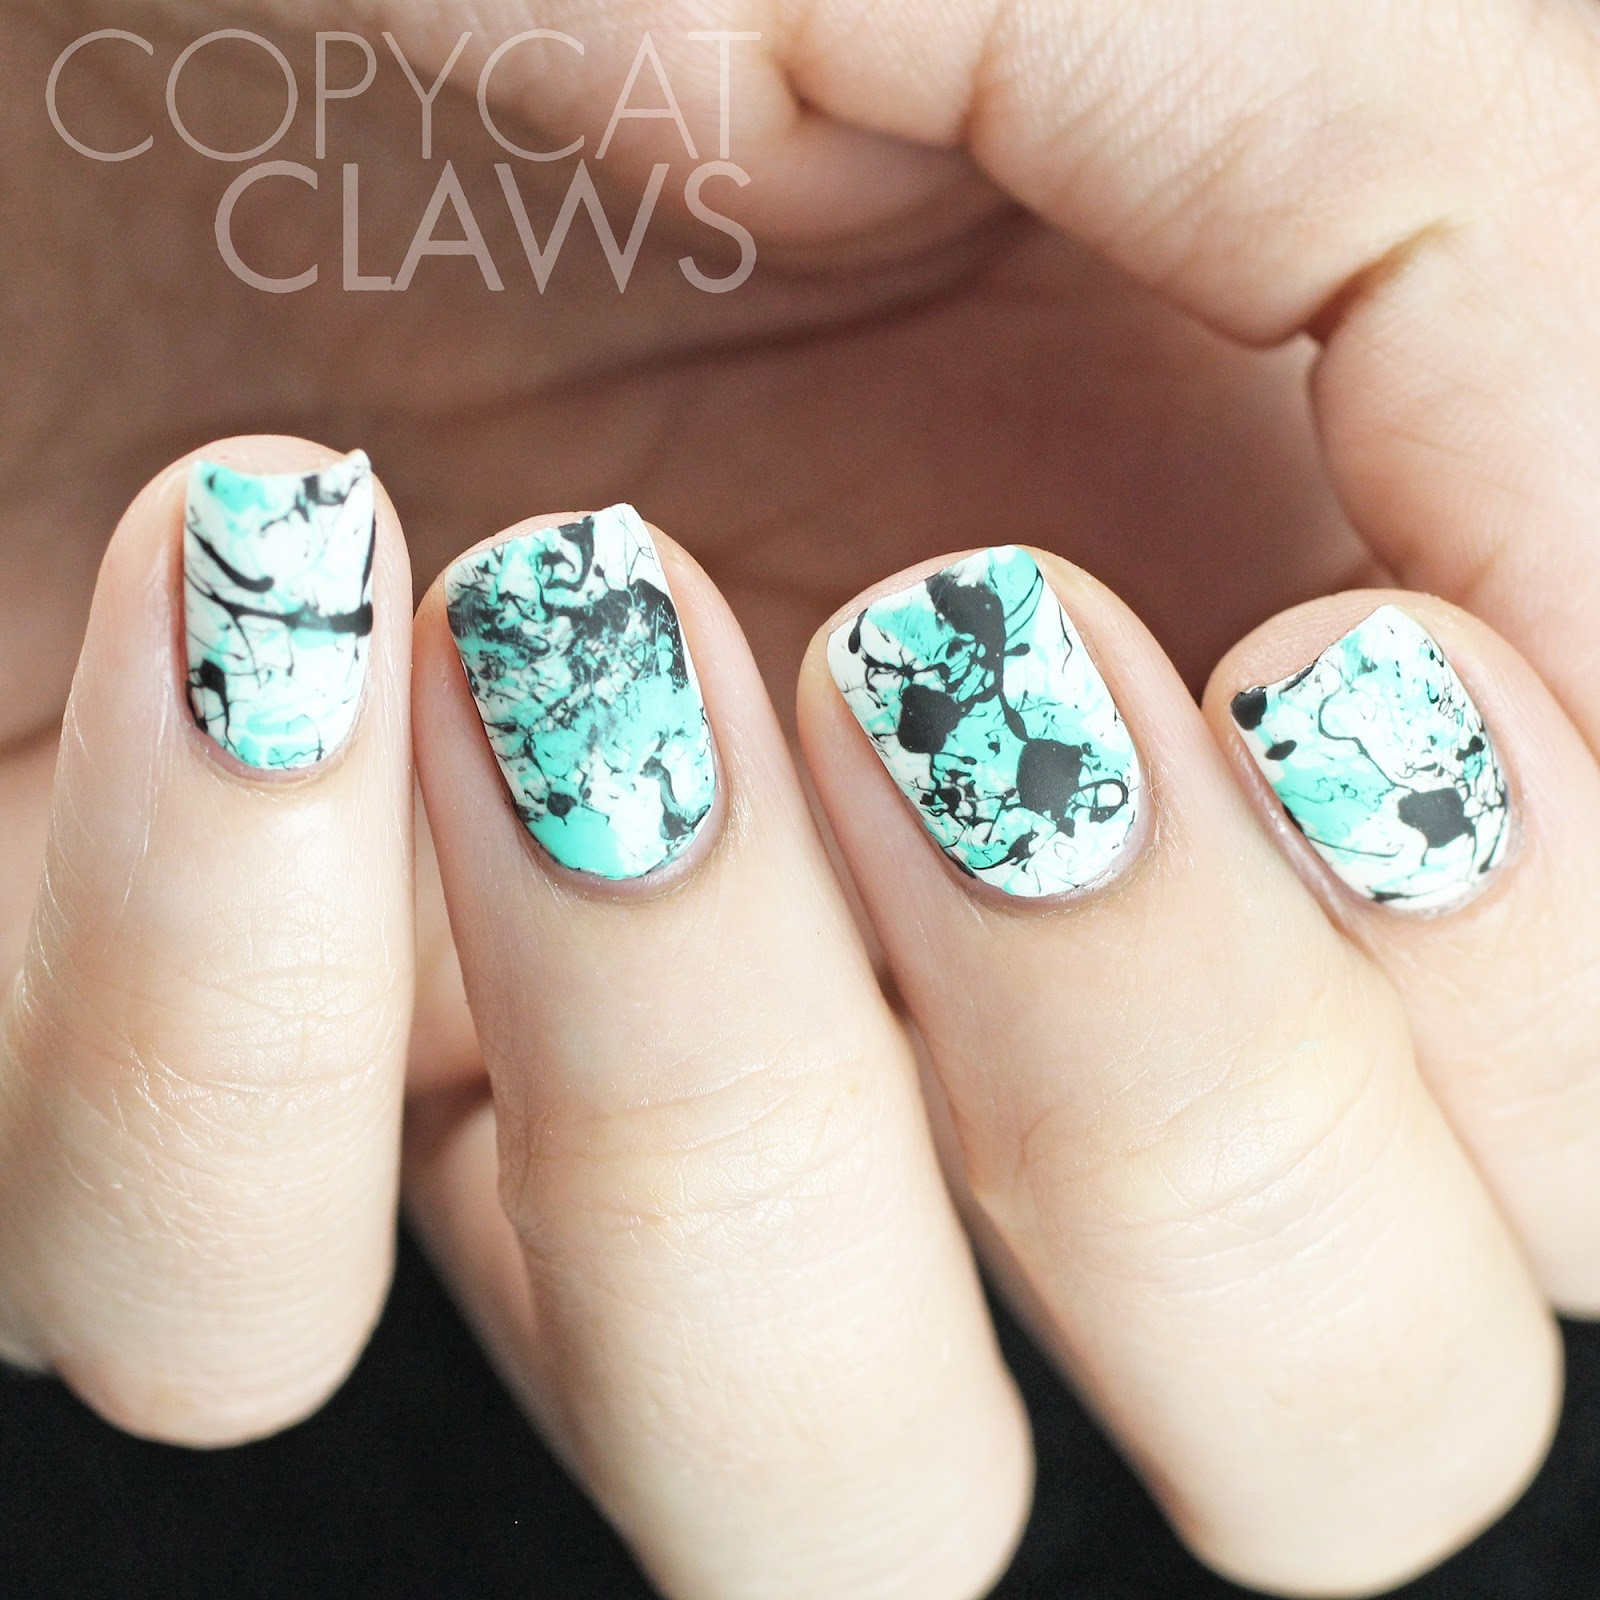 Copycat Claws Blue Color Block Nail Art: Copycat Claws: Aqua Splatter Nails